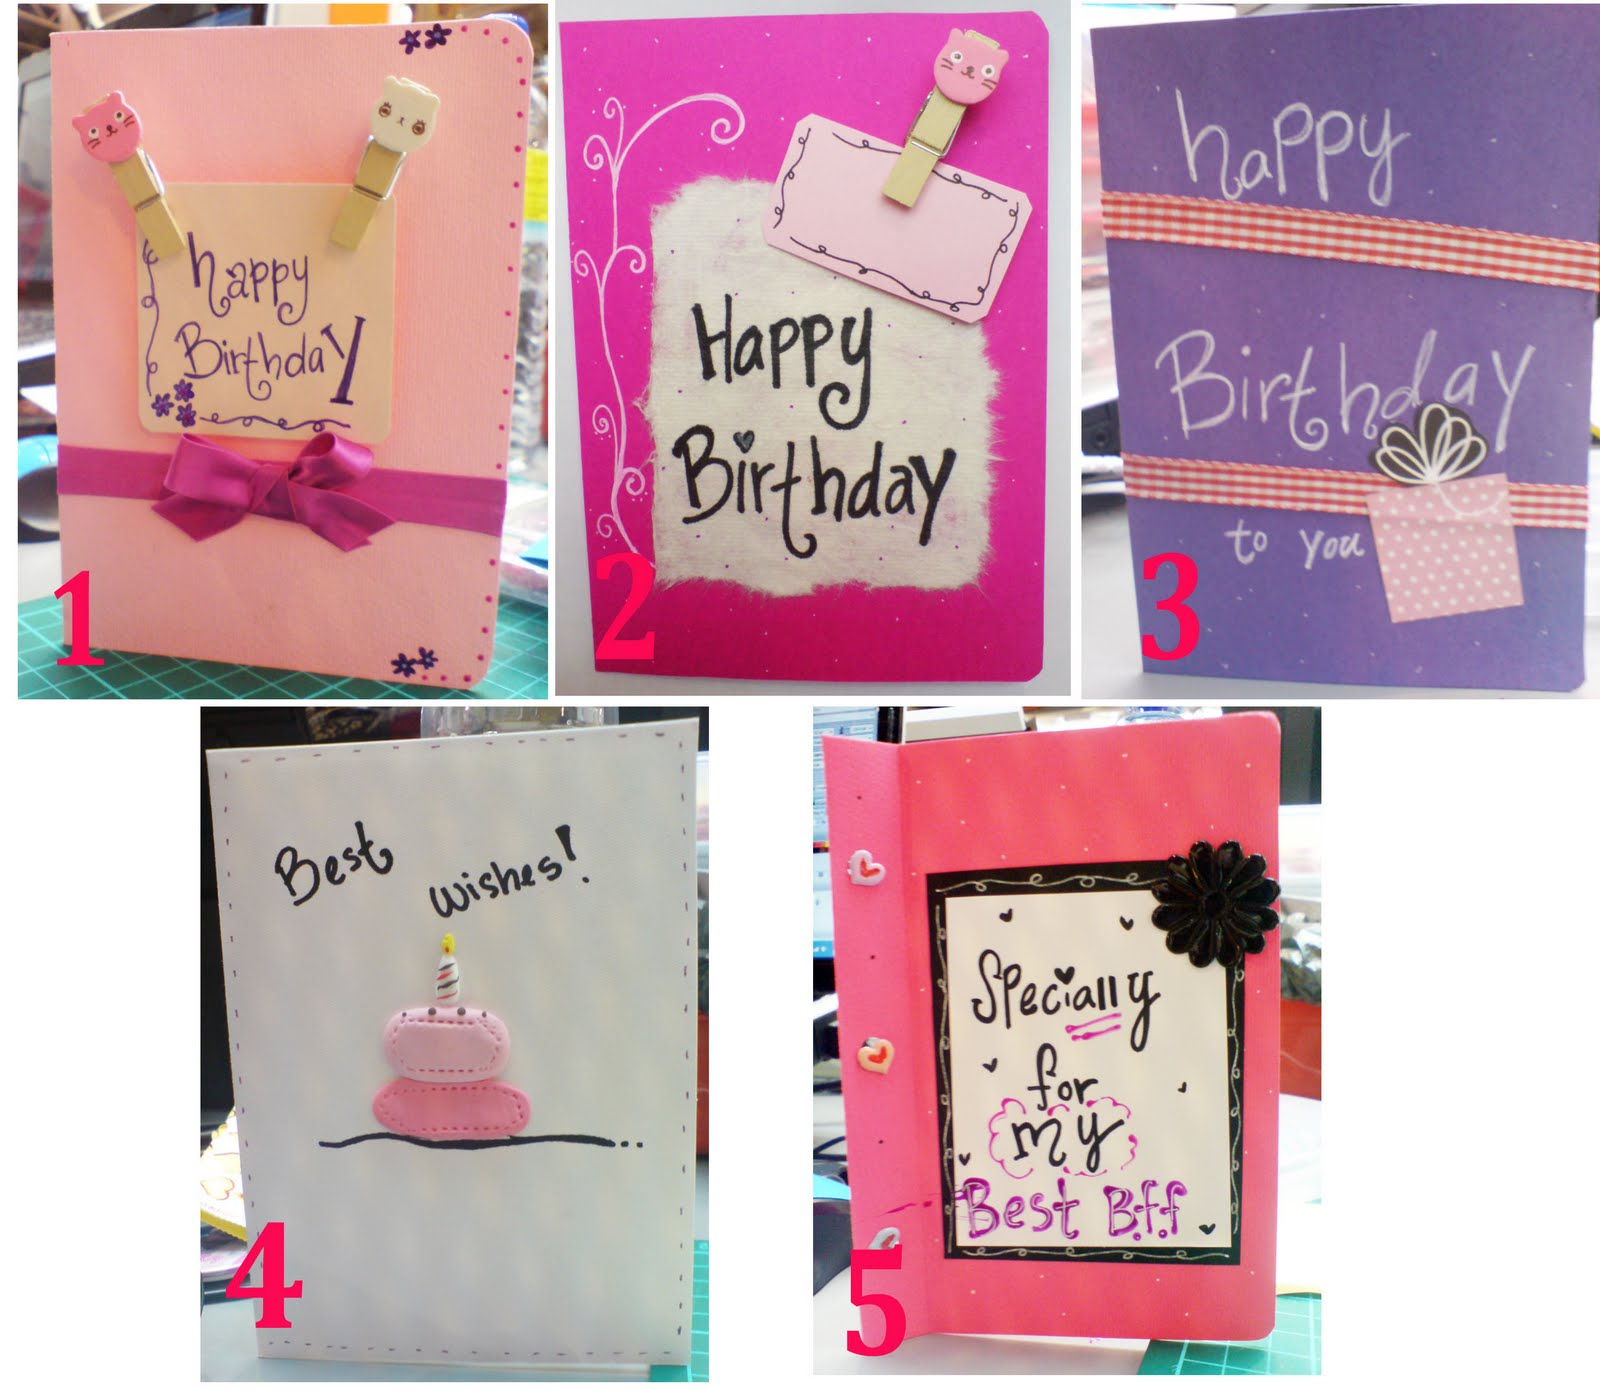 jcvk Inspire birthday card for girl friend